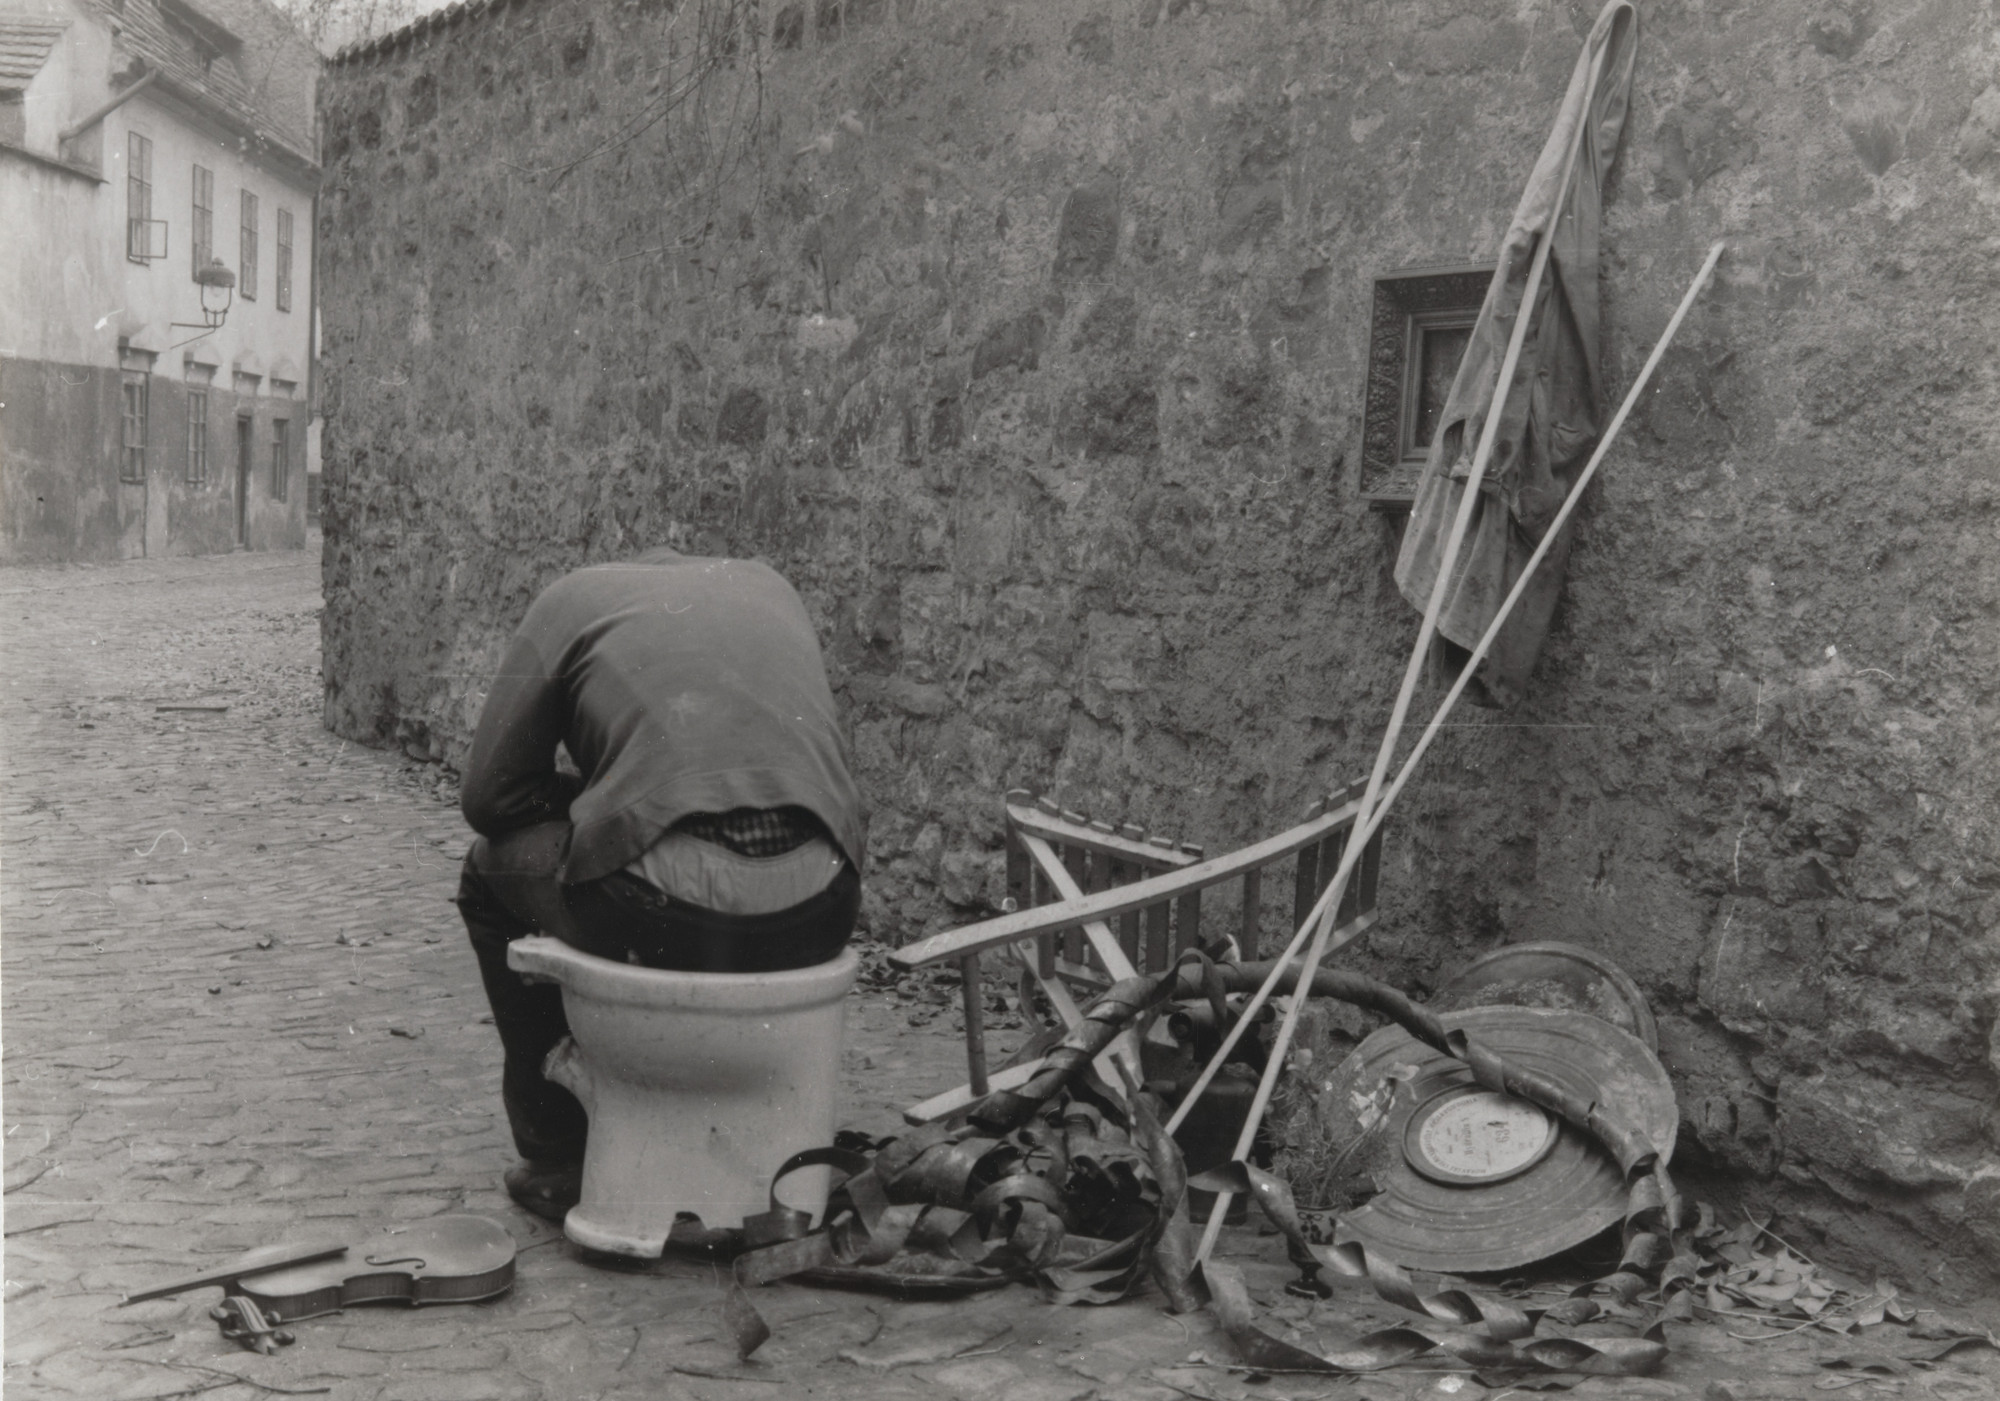 Milan Knížák. Environments on the Street from Performance Files. 1962–63